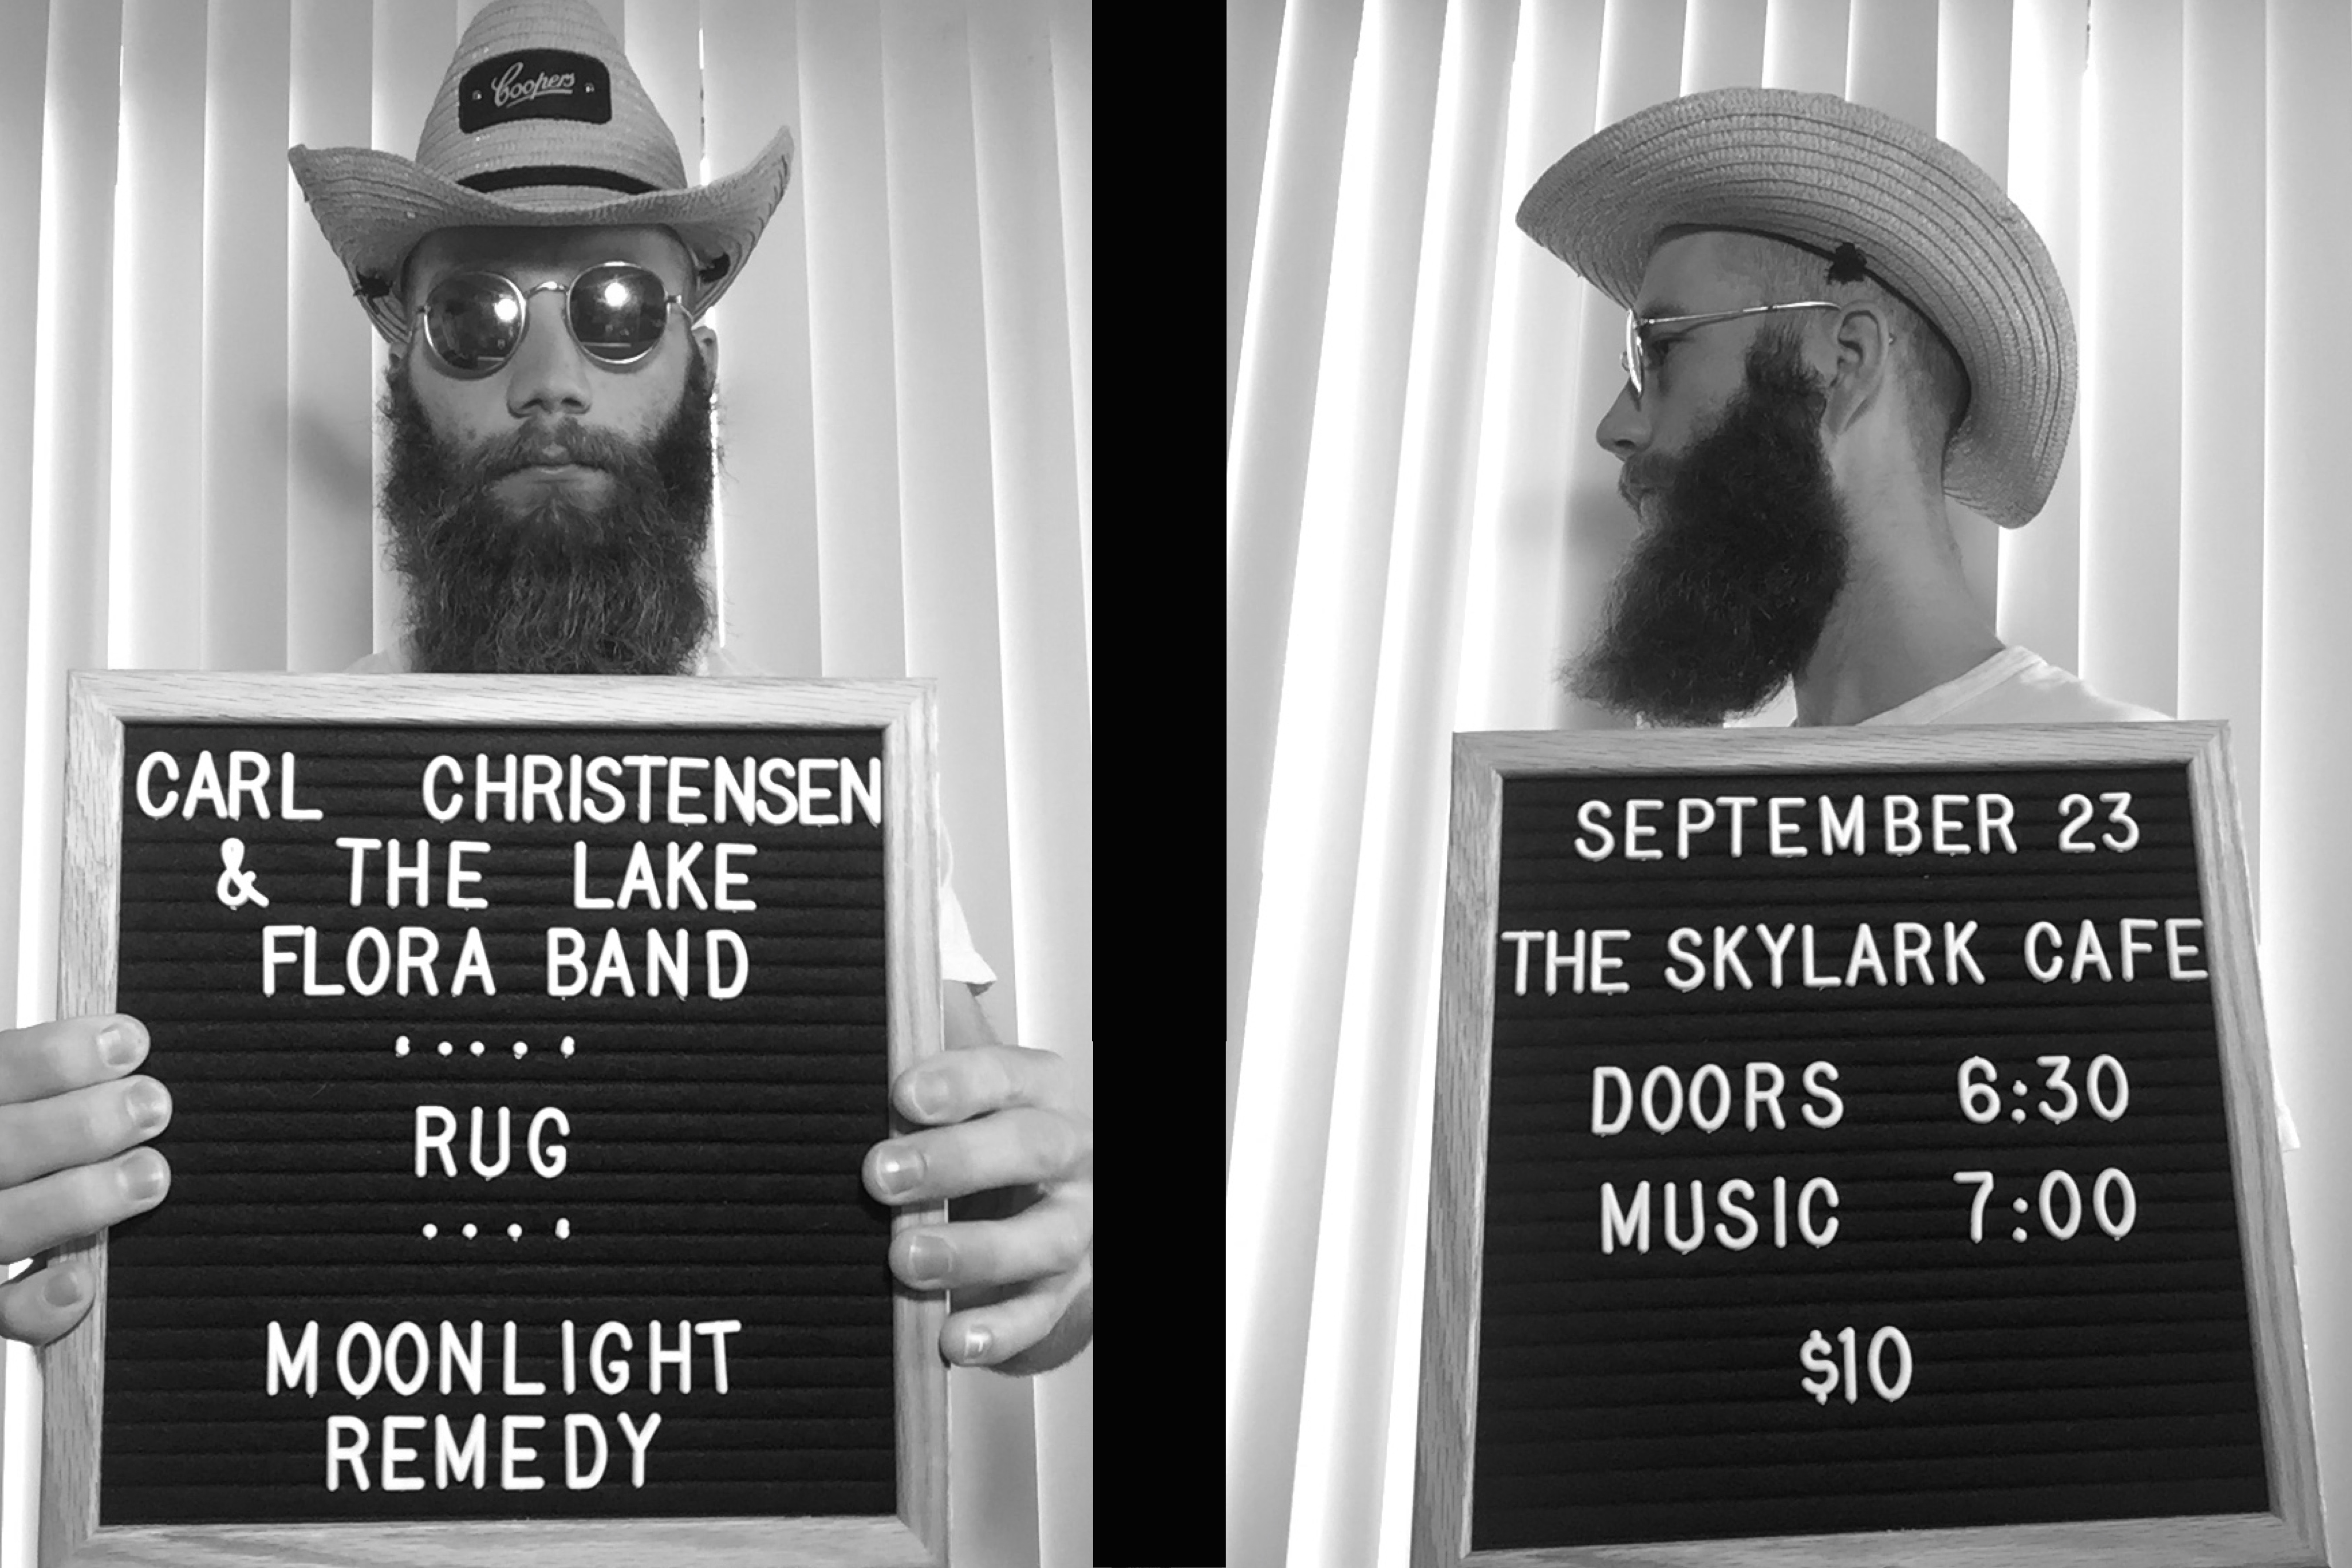 Local Folk Artist Carl Christensen & The Lake Flora Band is performing at The Skylark in West Seattle at 2021-09-23.